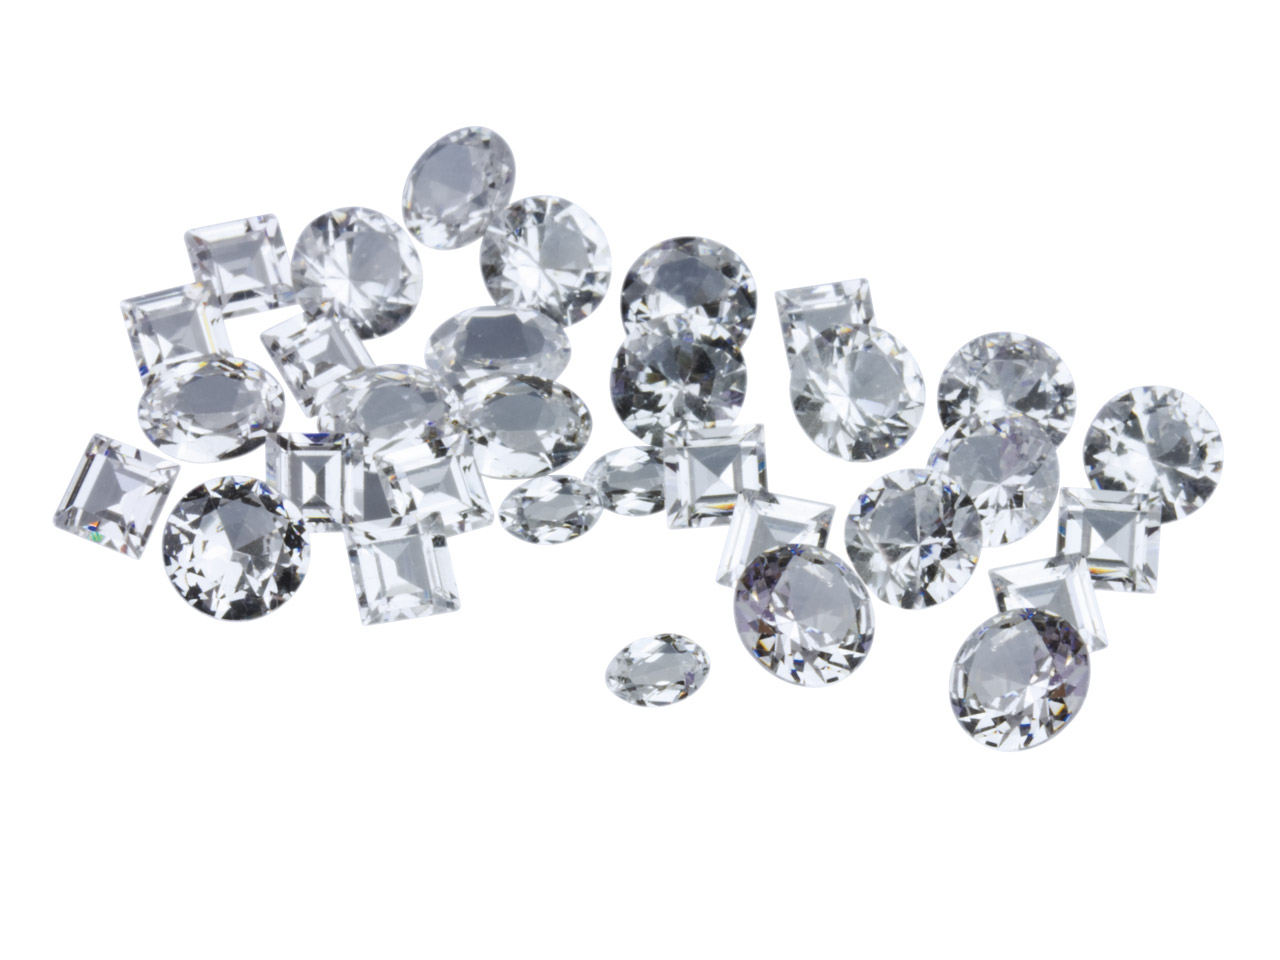 White Cz, Mixed Shapes, Pack of 25 Pmc Safe, Sizes And Shapes Will    Vary Slightly